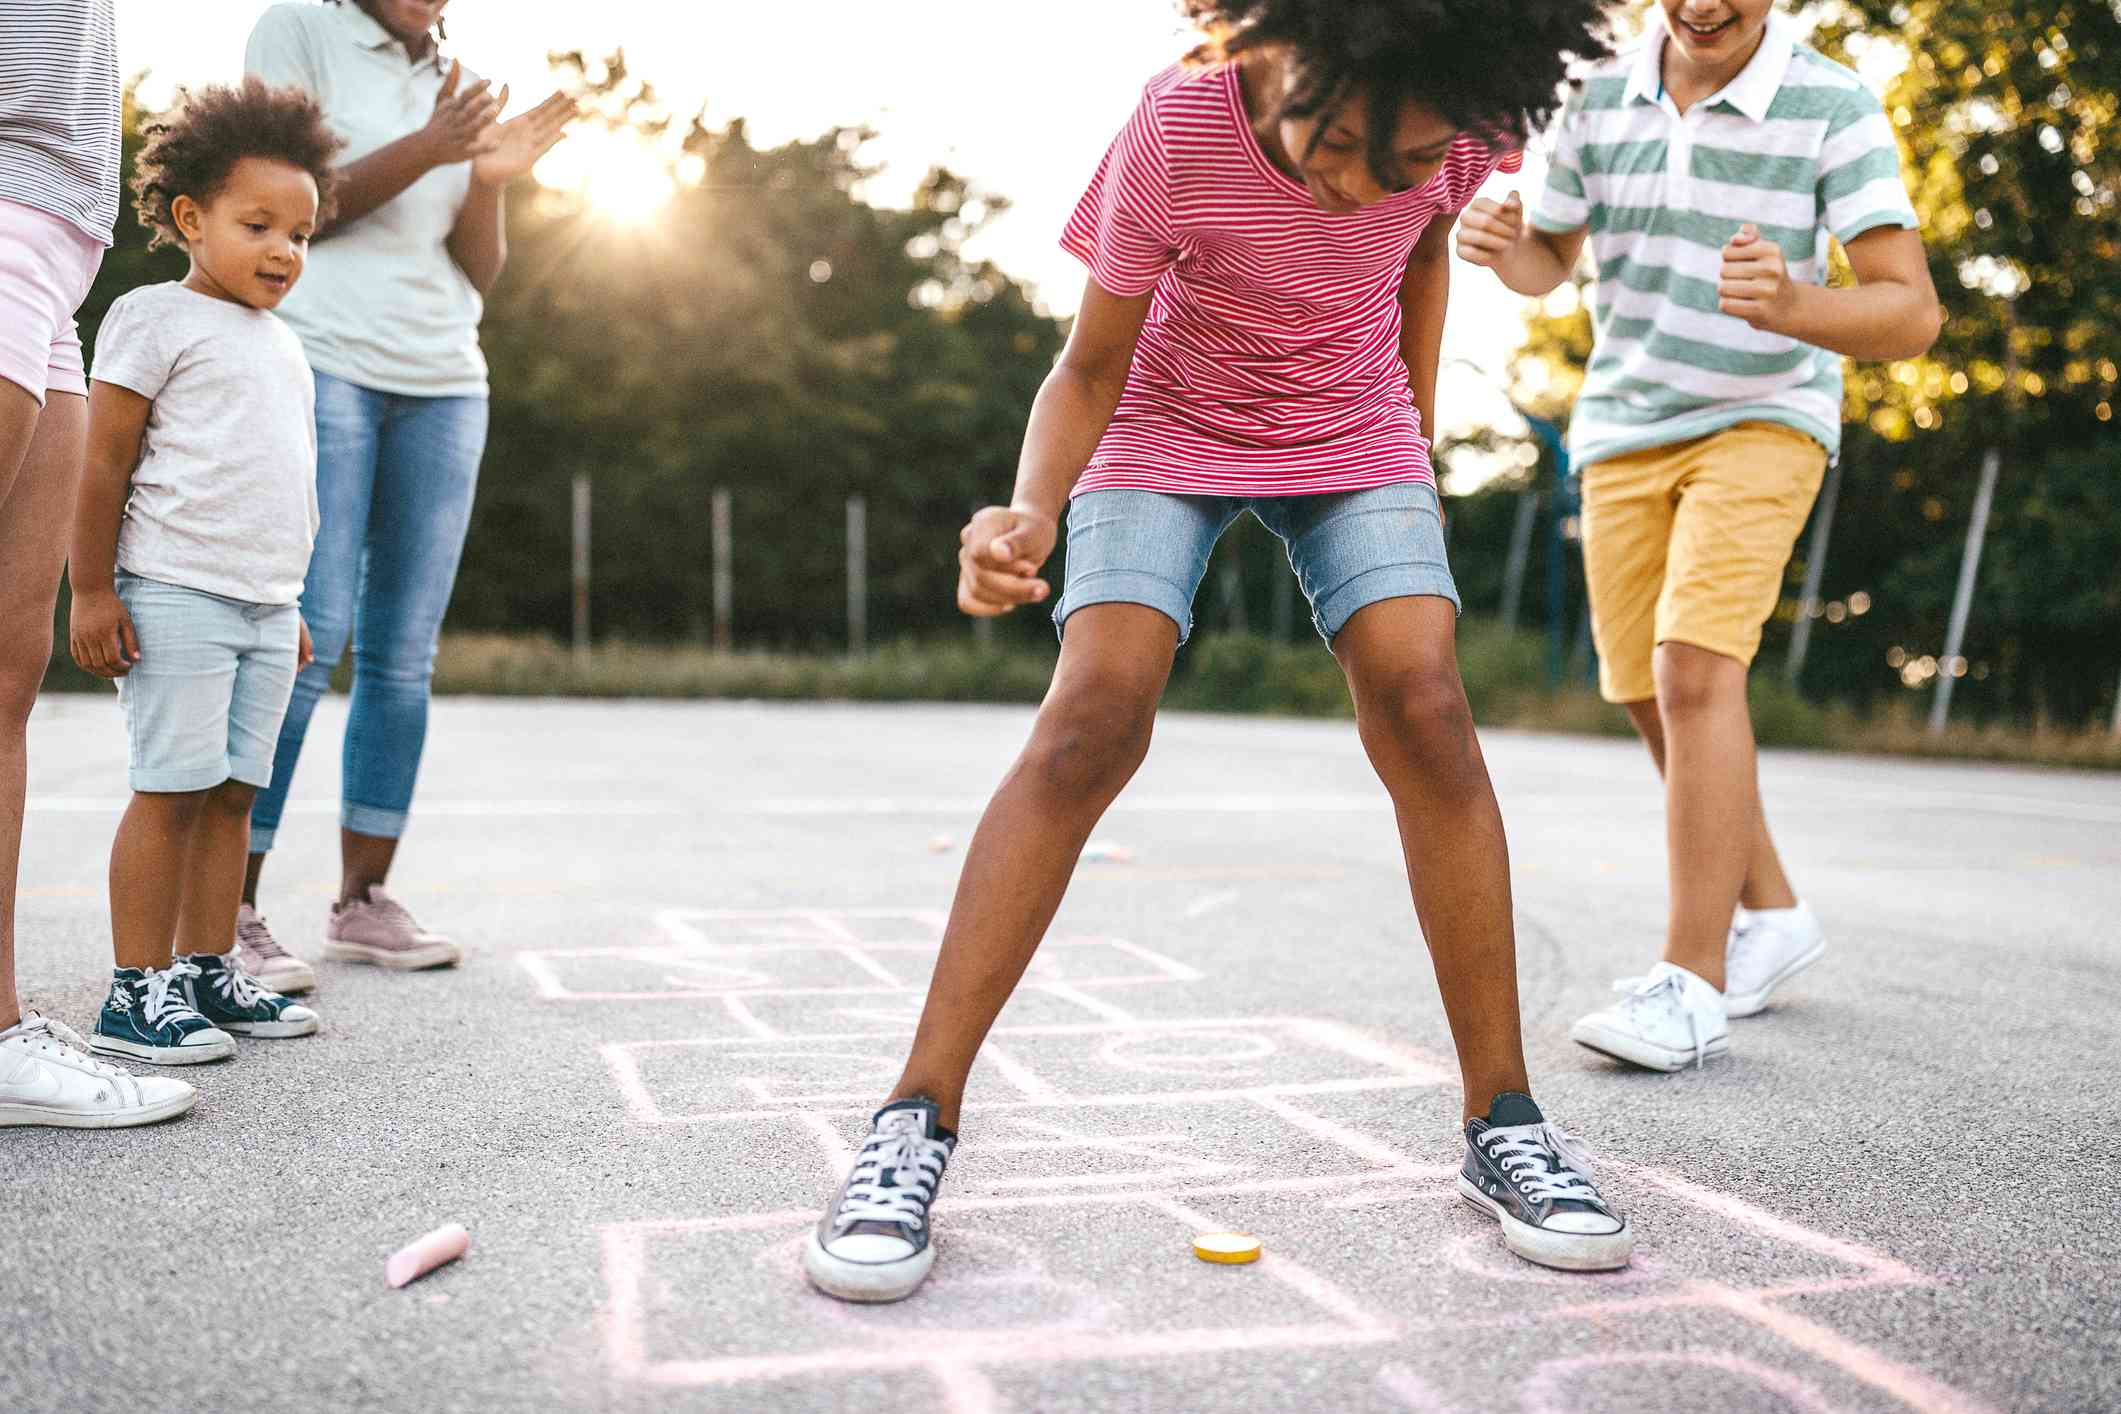 A family playing hopscotch